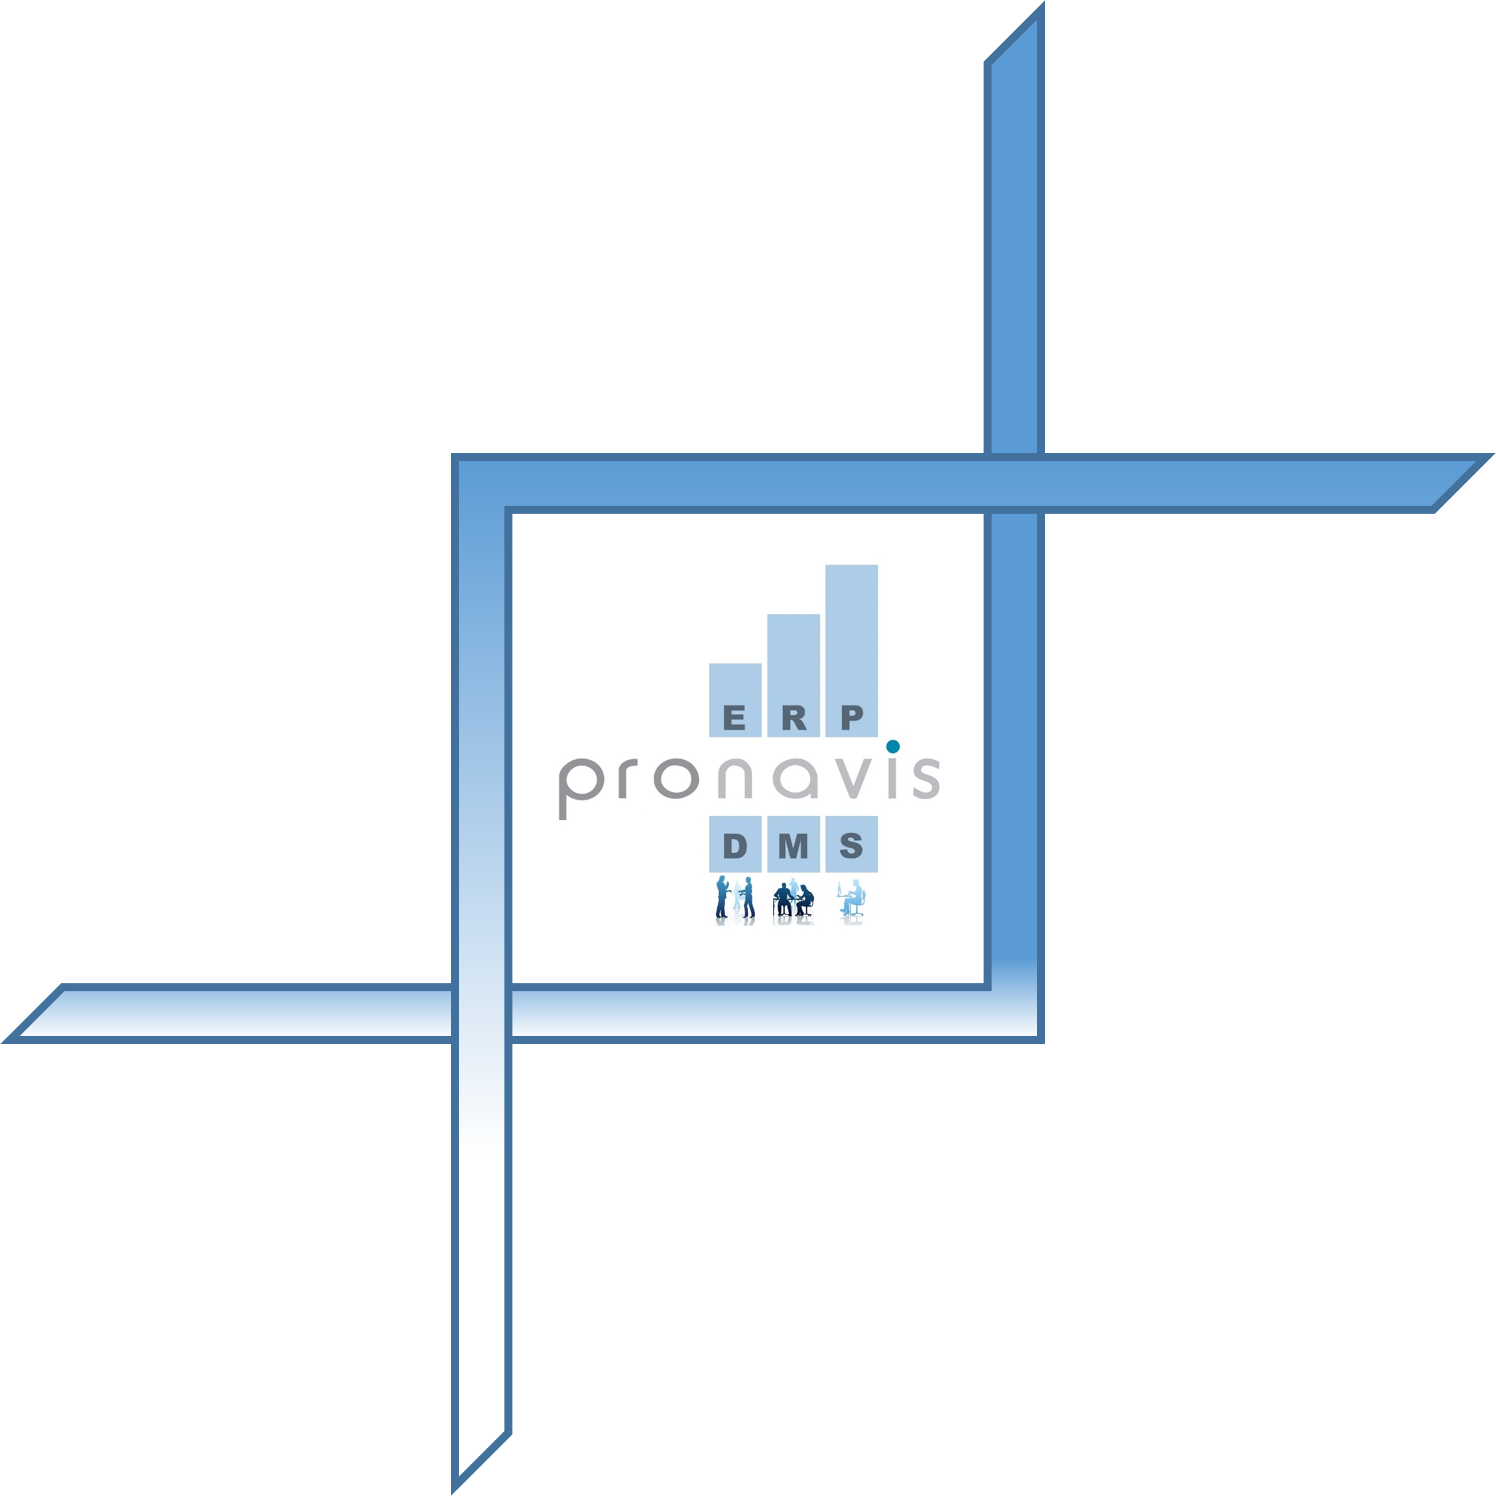 CEBIT 2018 - pronavis GmbH - NAV & DMS Support - ERP Software - Microsoft Dynamics NAV